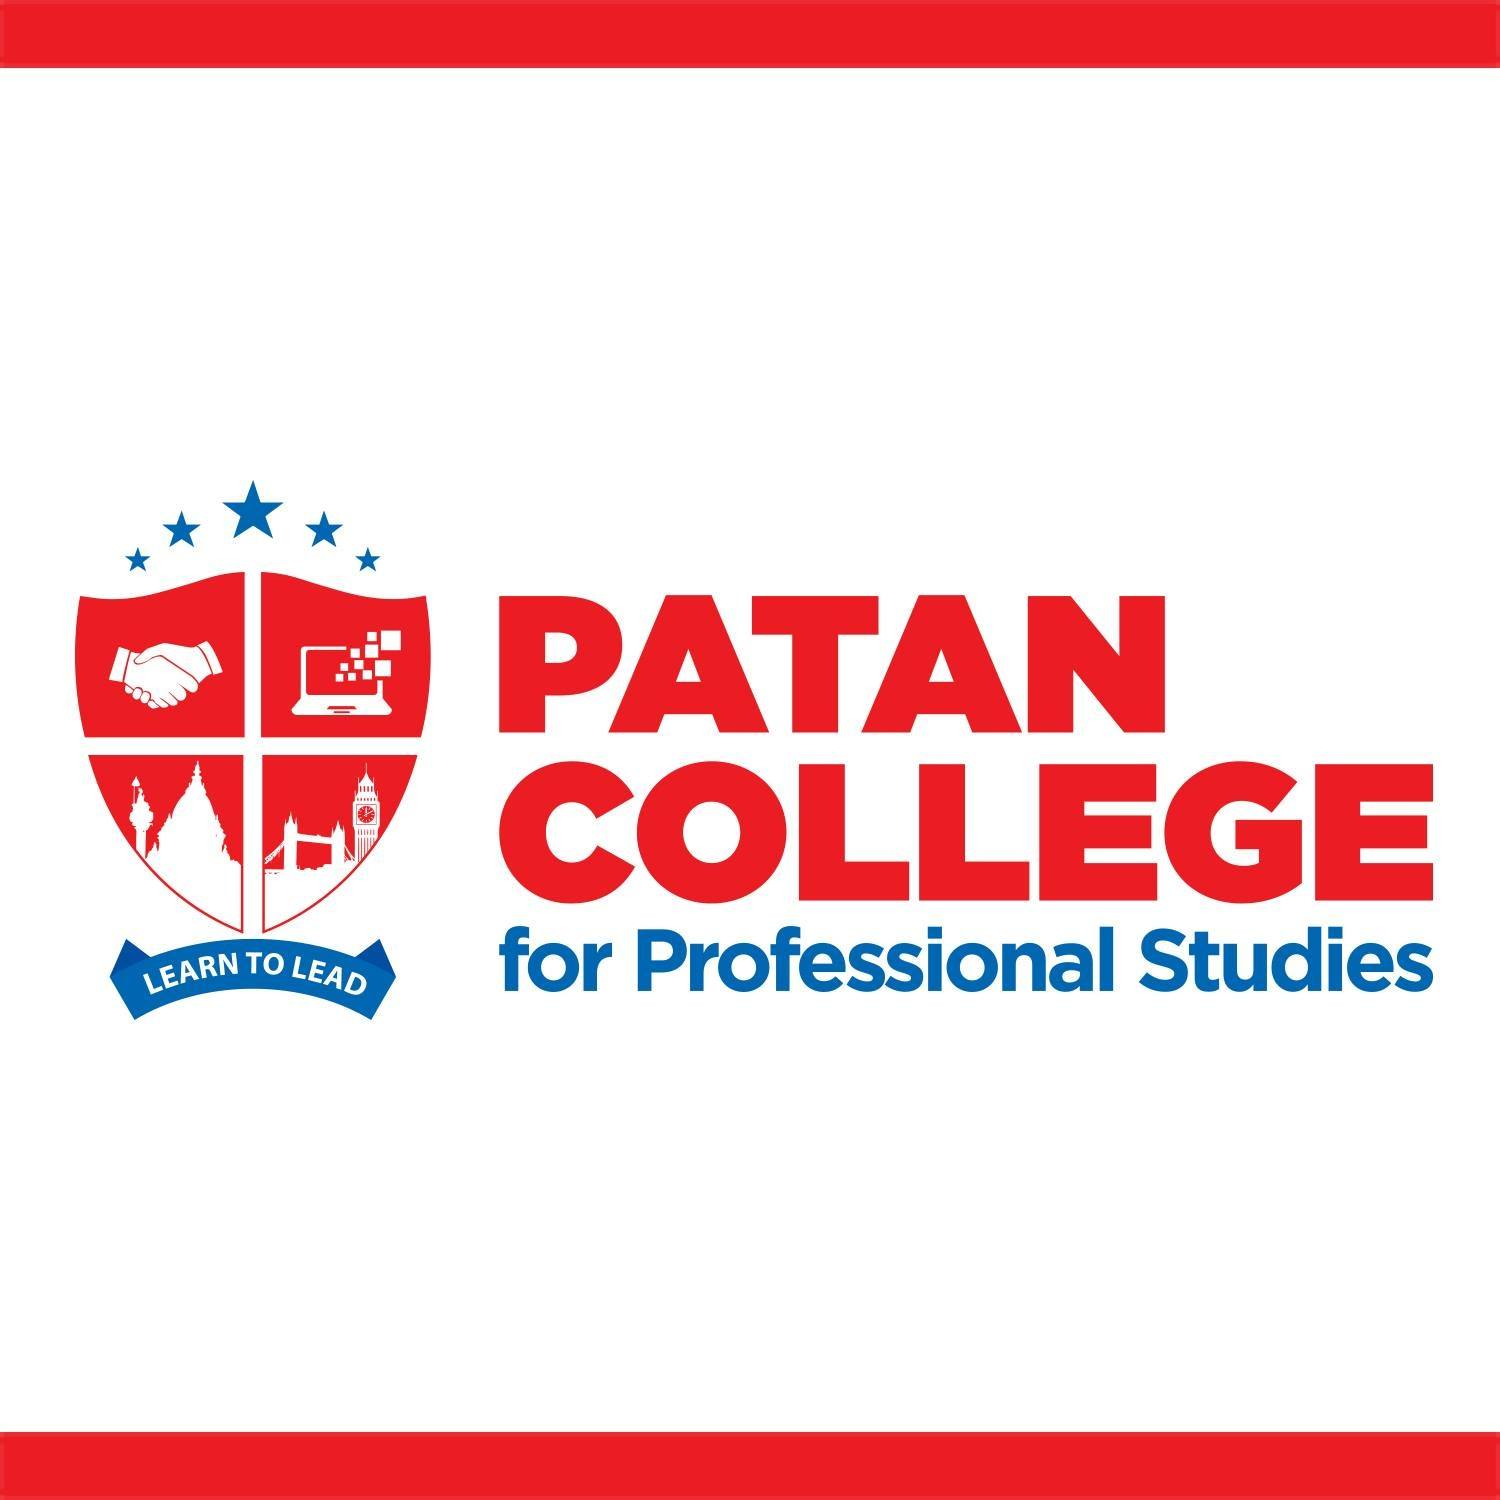 Patan College for Professional Studies Scholarship programs